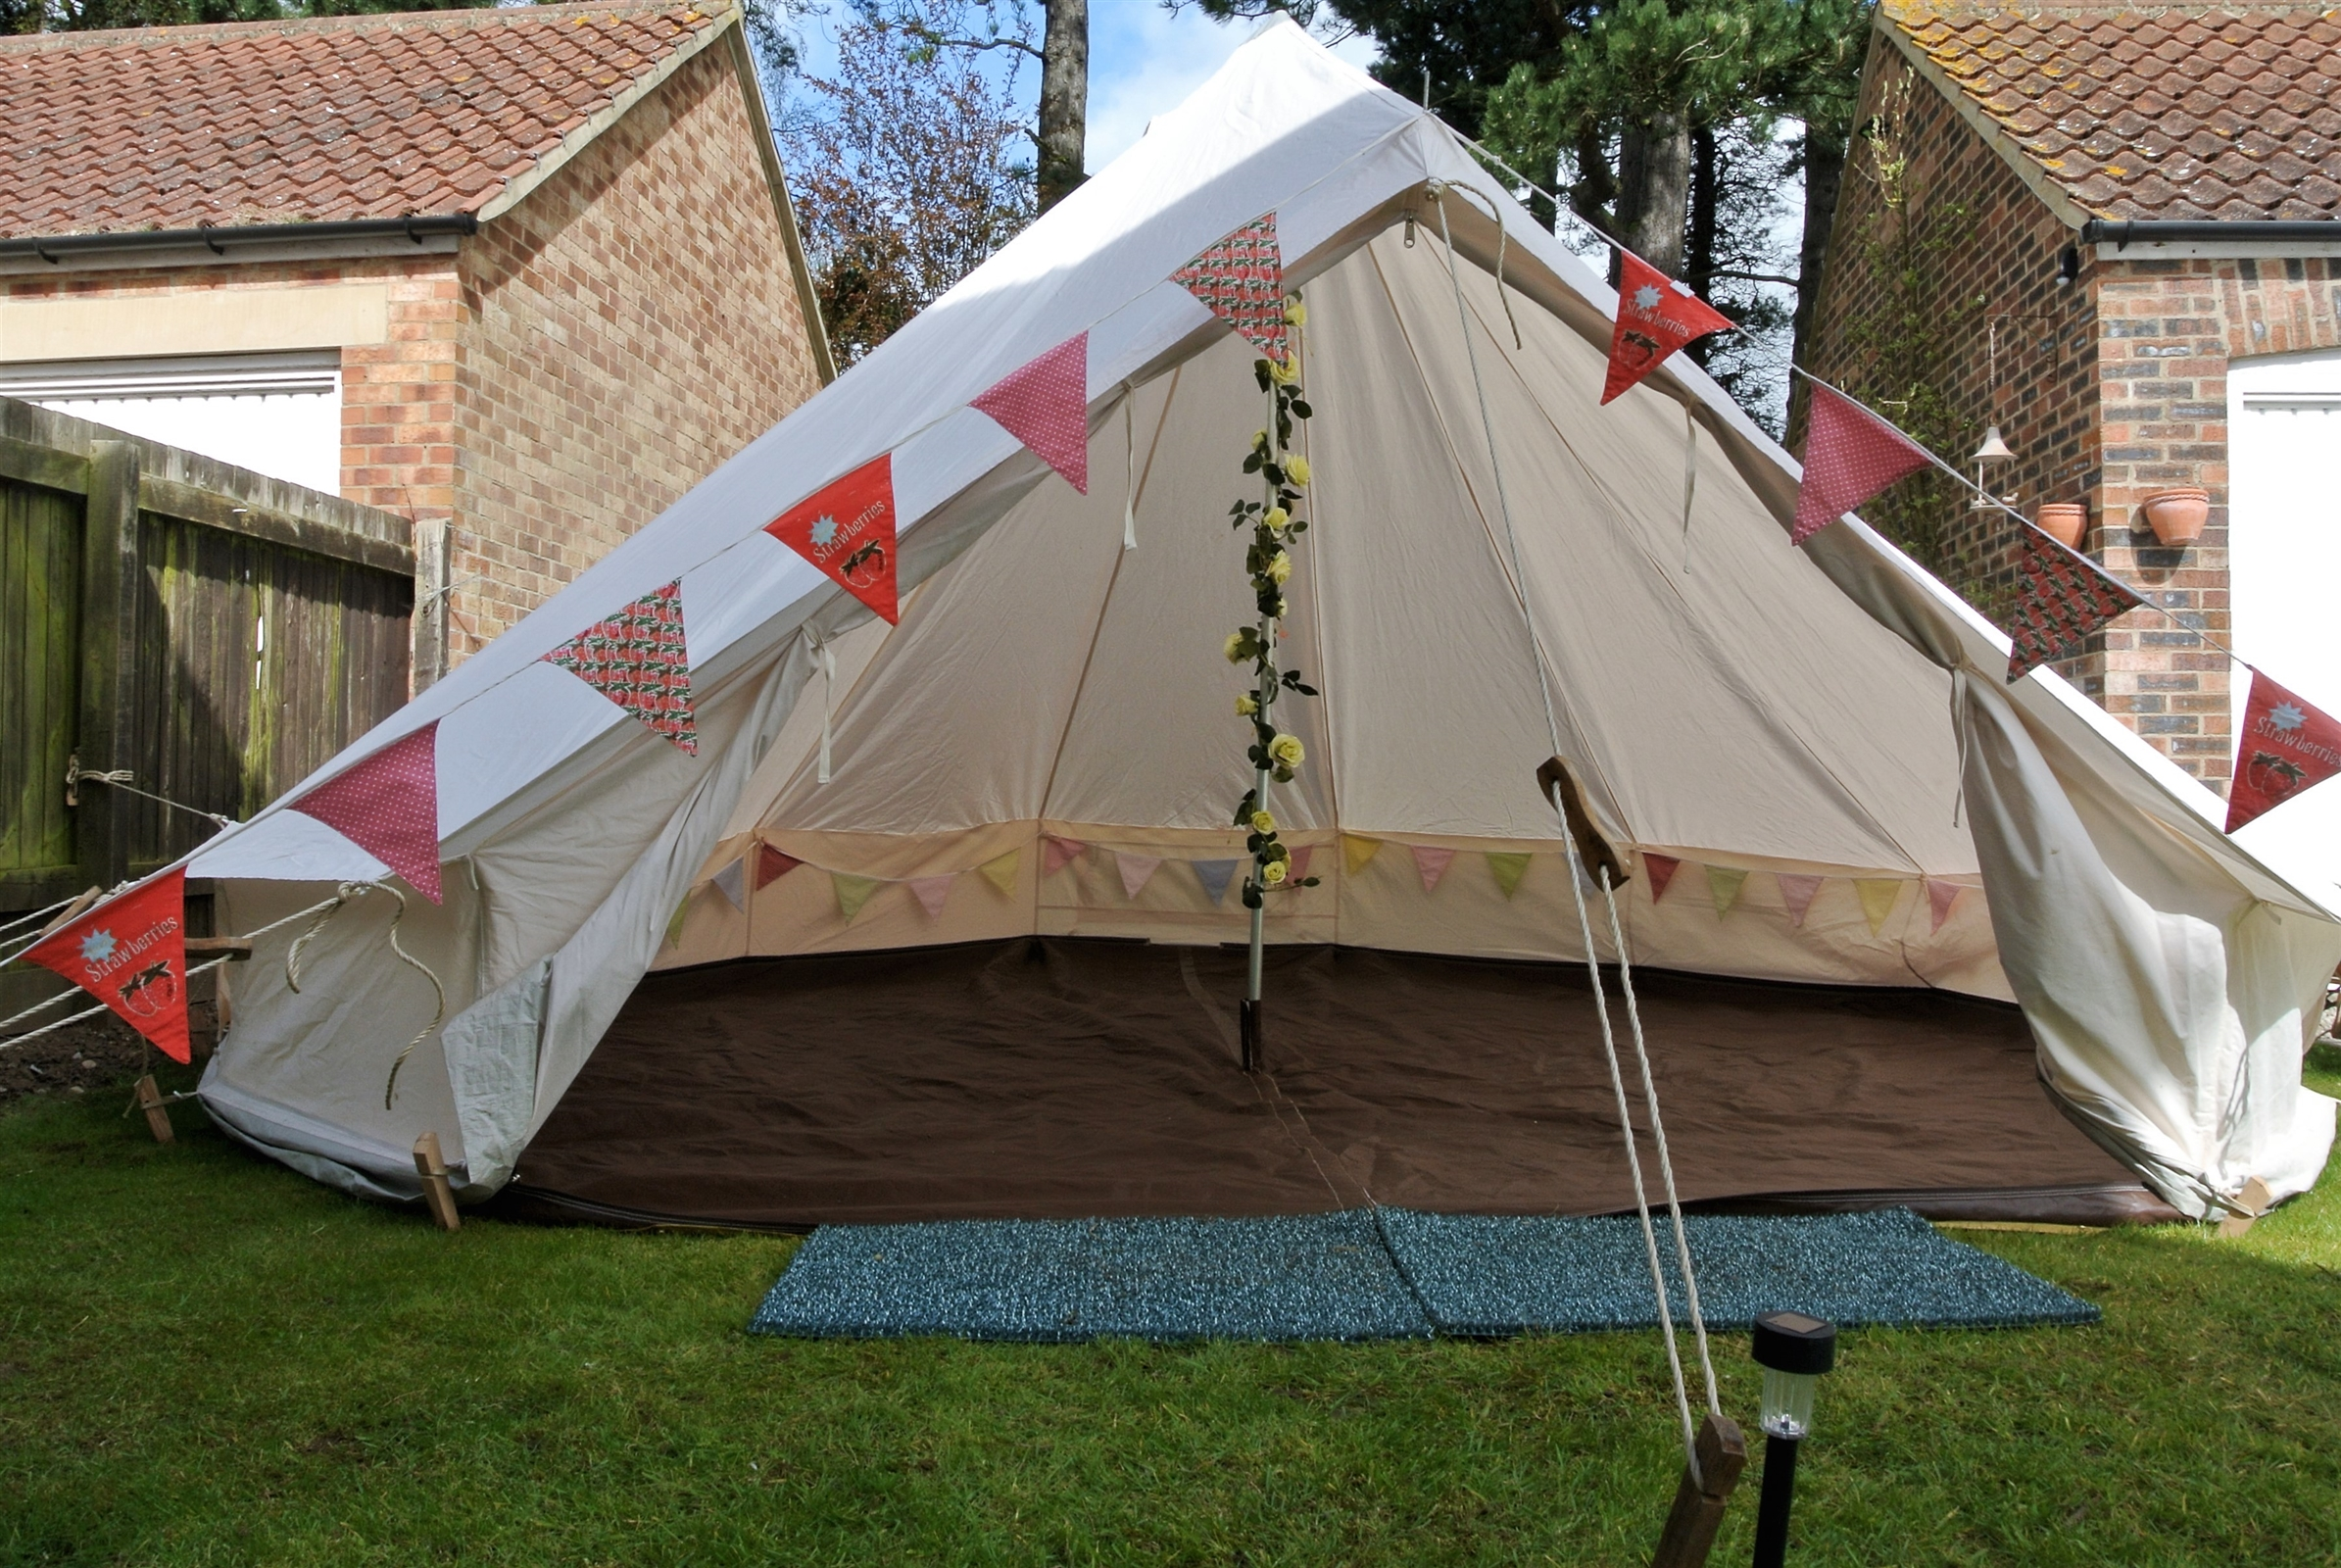 Bell Tent Tea Party Package for 12 (1 Day hire) - Childrenu0027s Entertainment in Leeds & Bell Tent Tea Party Package for 12 (1 Day hire) - Childrenu0027s ...